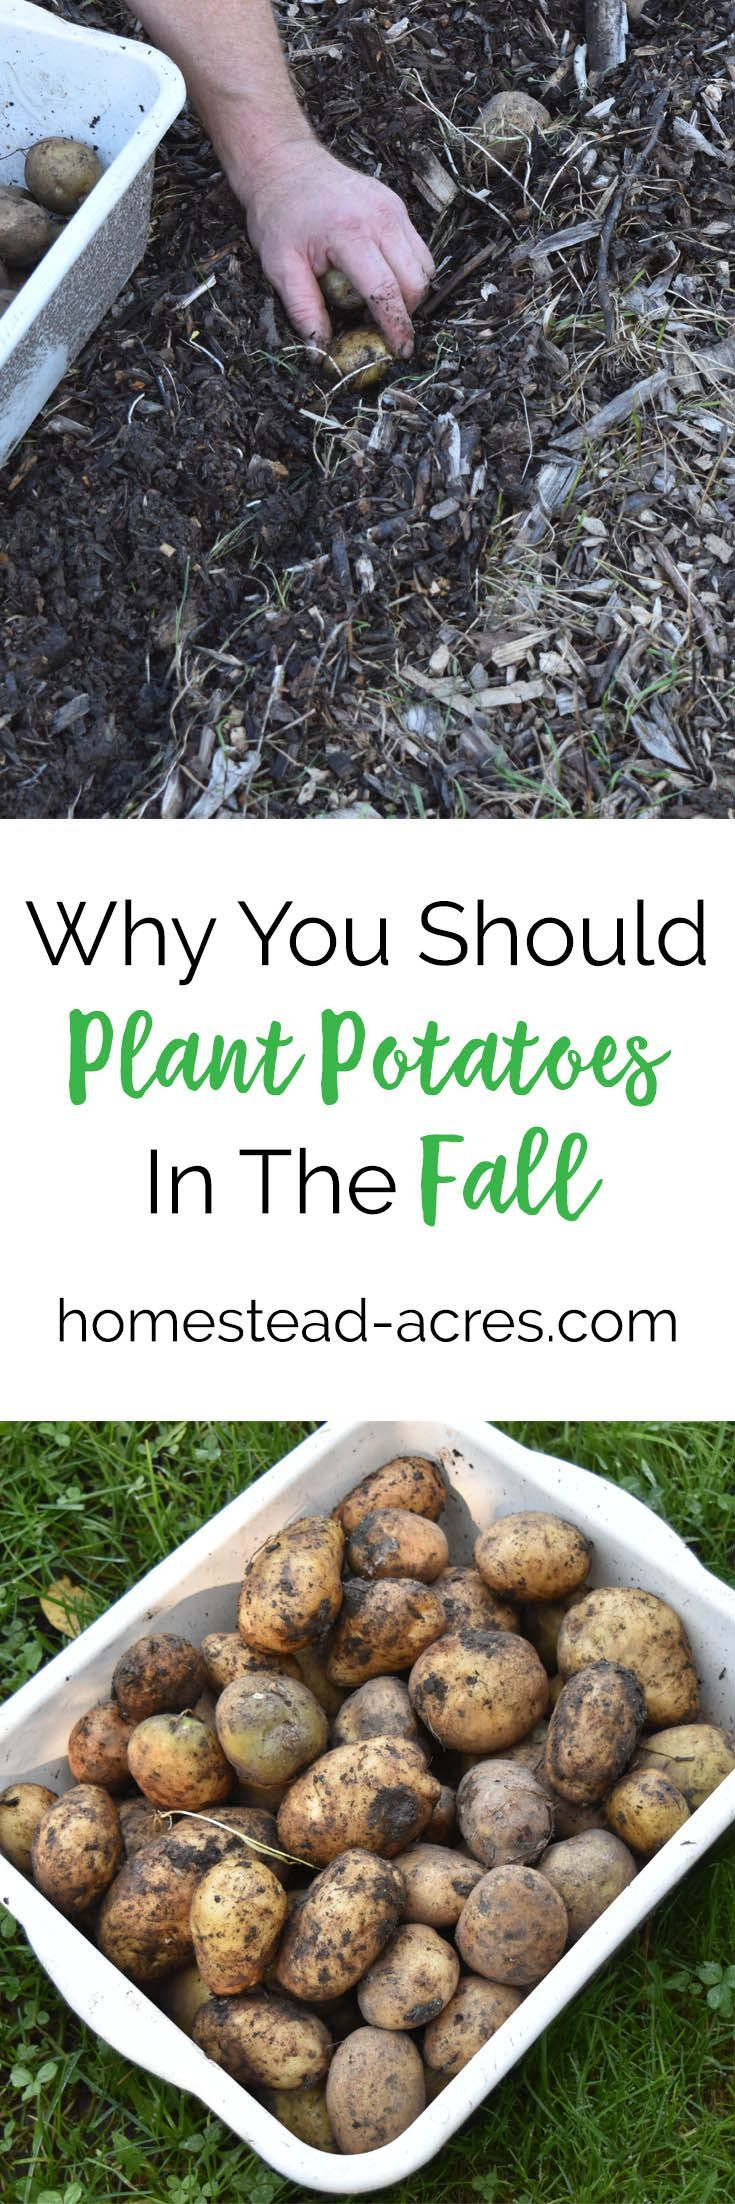 Planting Potatoes How To Plant Potatoes In The Fall Planting Potatoes Fall Garden Vegetables Fall Vegetables